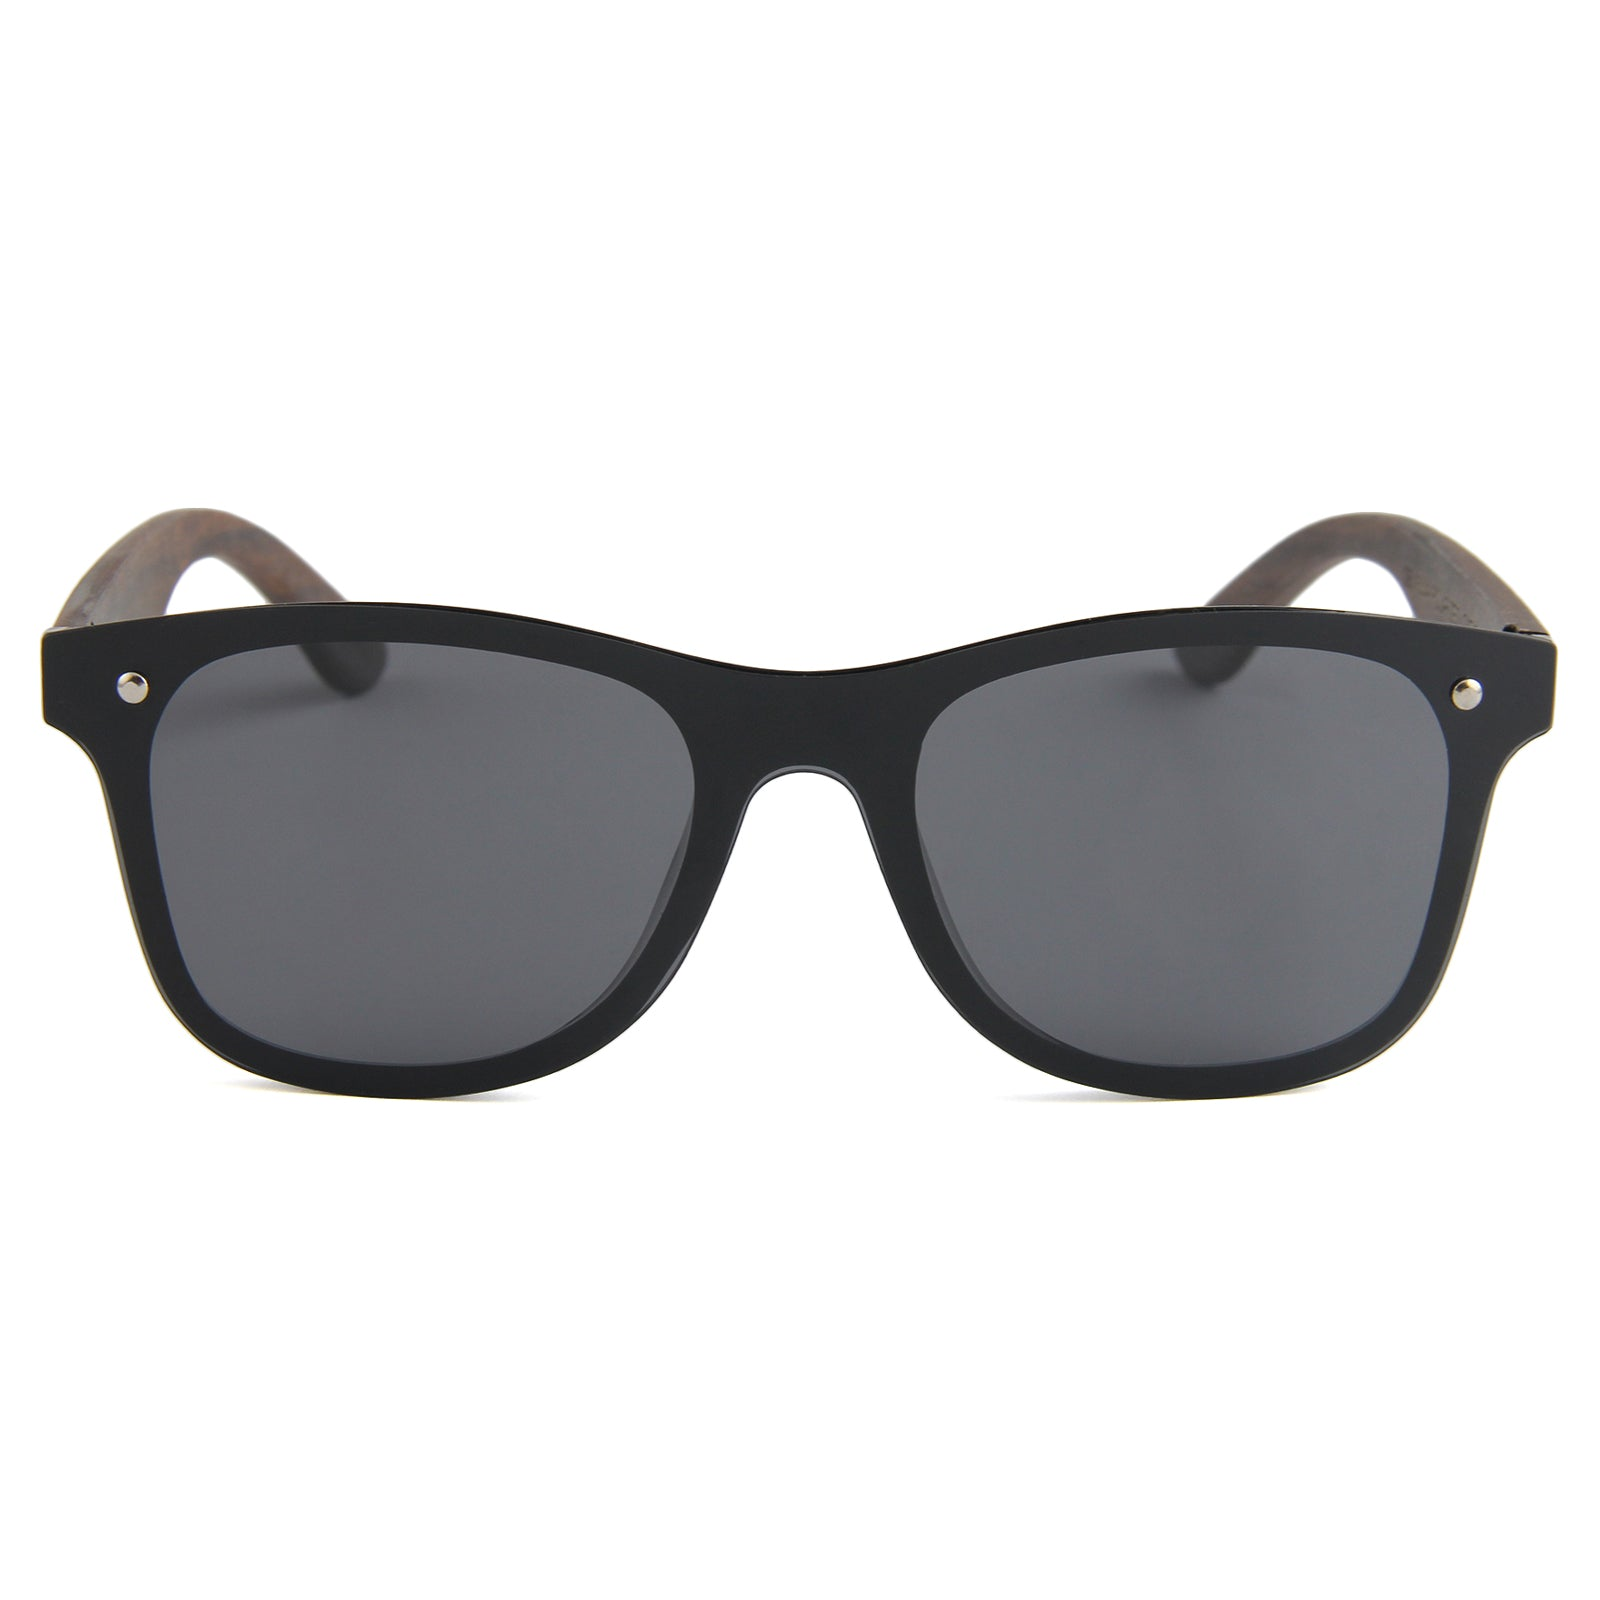 Berkton - 01 - Smoked Polarized Lens